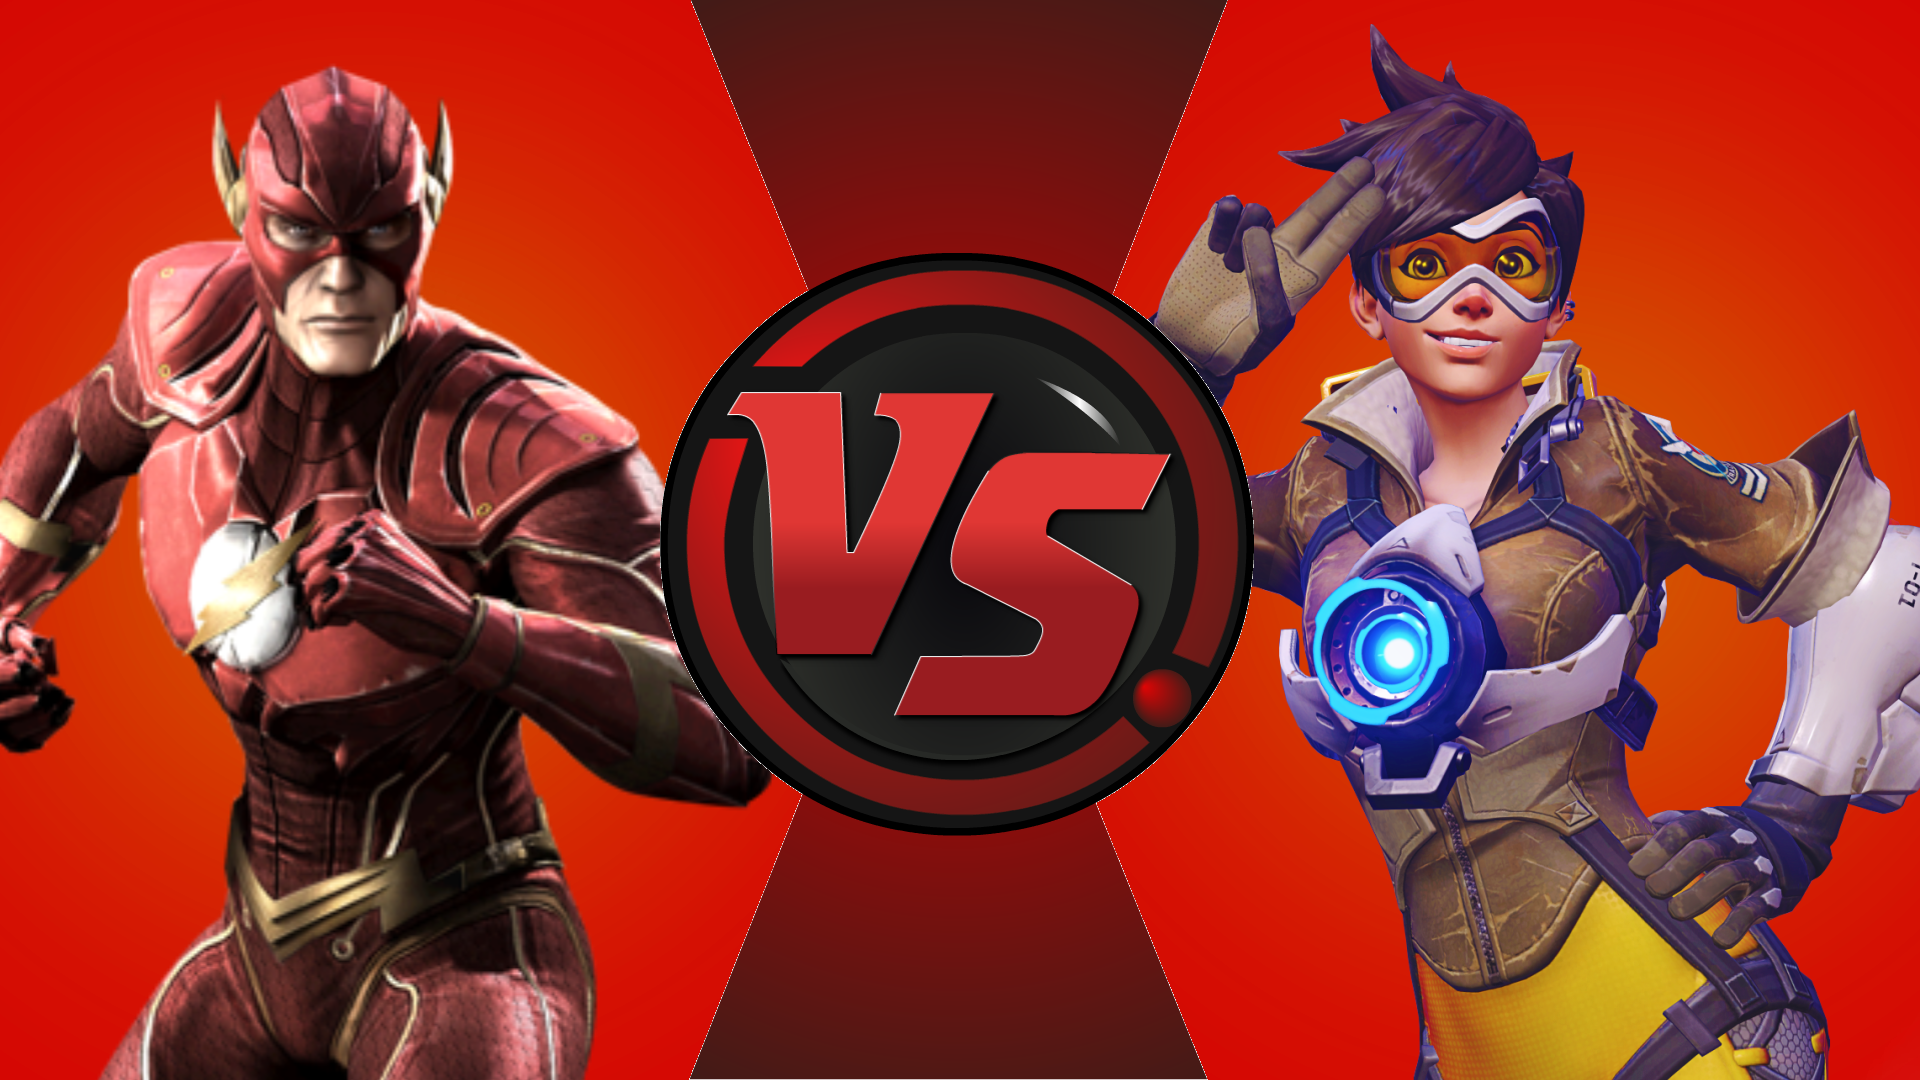 CFC|Flash vs. Tracer by Vex2001